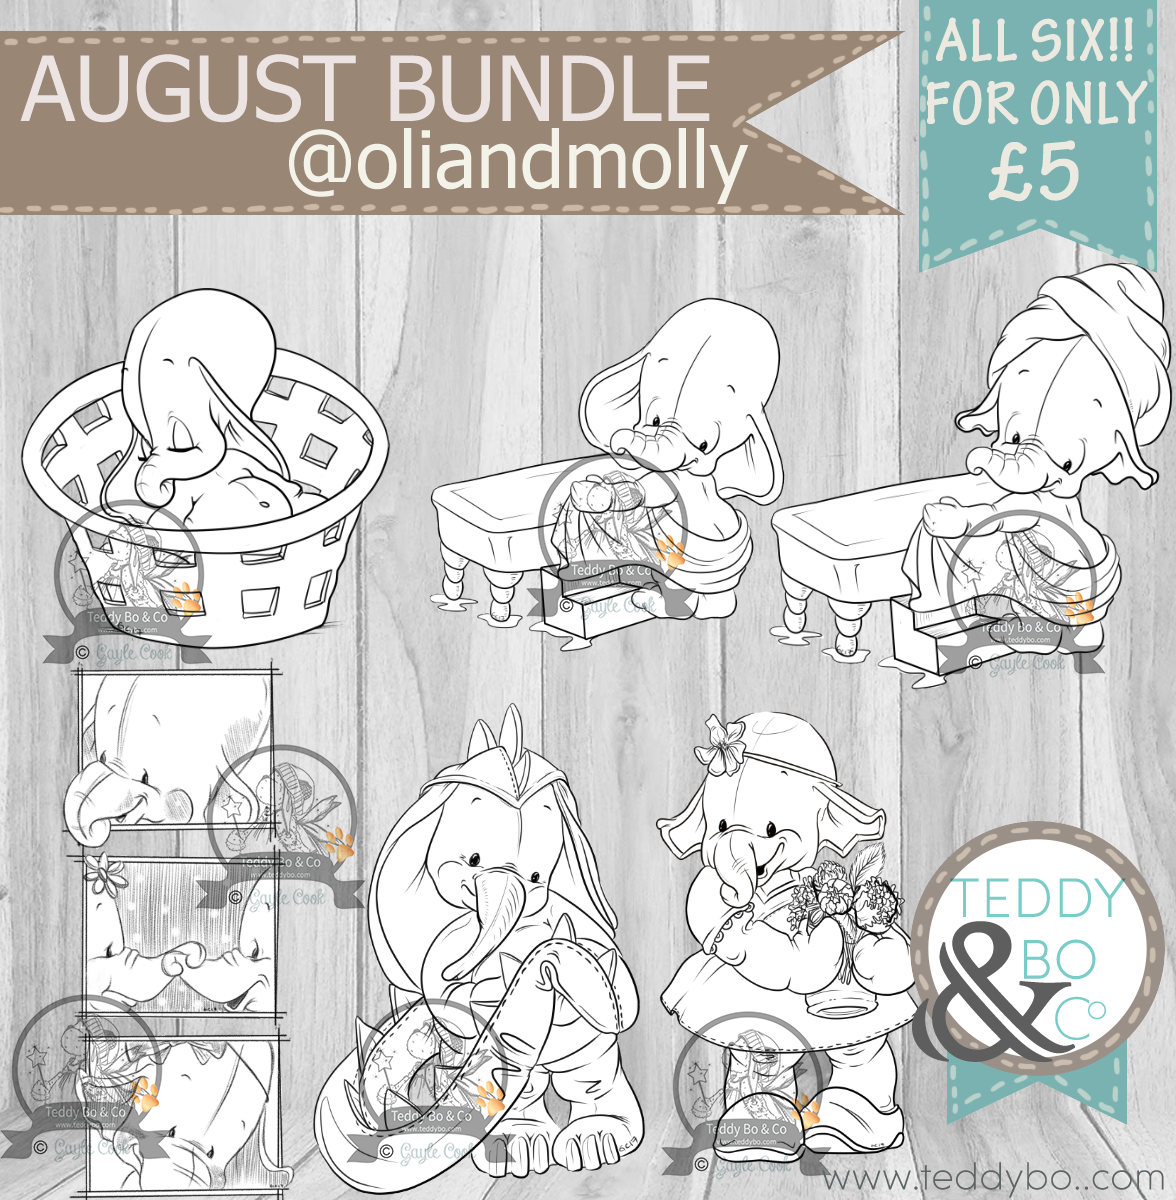 AUGUST_OLImOLLY_BUNDLEPRODUCT SHOT.png